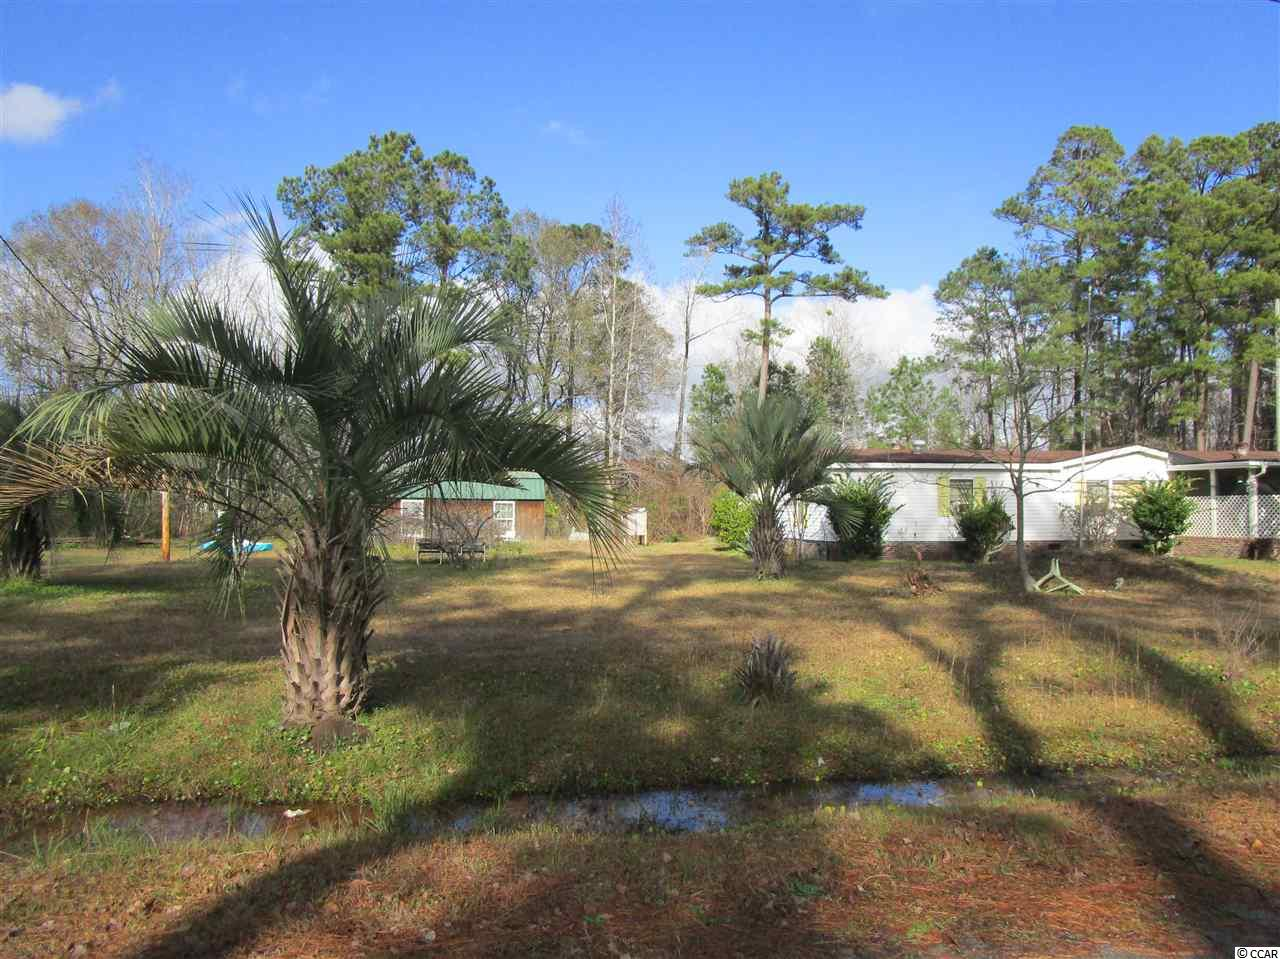 This 1.72 acres is located in a great area, close to retail traffic generators Wal-Mart, Lowe's, Food Lion and CVS. In addition, the property is in close proximity to Conway Hospital, Coastal Carolina University and Horry Georgetown Technical College generating a large student and medical population to be serviced. Further, the property is a short distance to the beach allowing for servicing that population as well. The county's property zoning laws allow for many opportunities for this acreage to be developed as, including but not limited to, a hardware store, restaurant, mini warehouse, medical offices,  college dorms, apartments/condos, as well as automotive repair,  convenience stores, and banks. And finally, this property is uniquely positioned to service the public with 180 feet of road frontage on Hwy 544. This Property is defiantly worth a look!!!